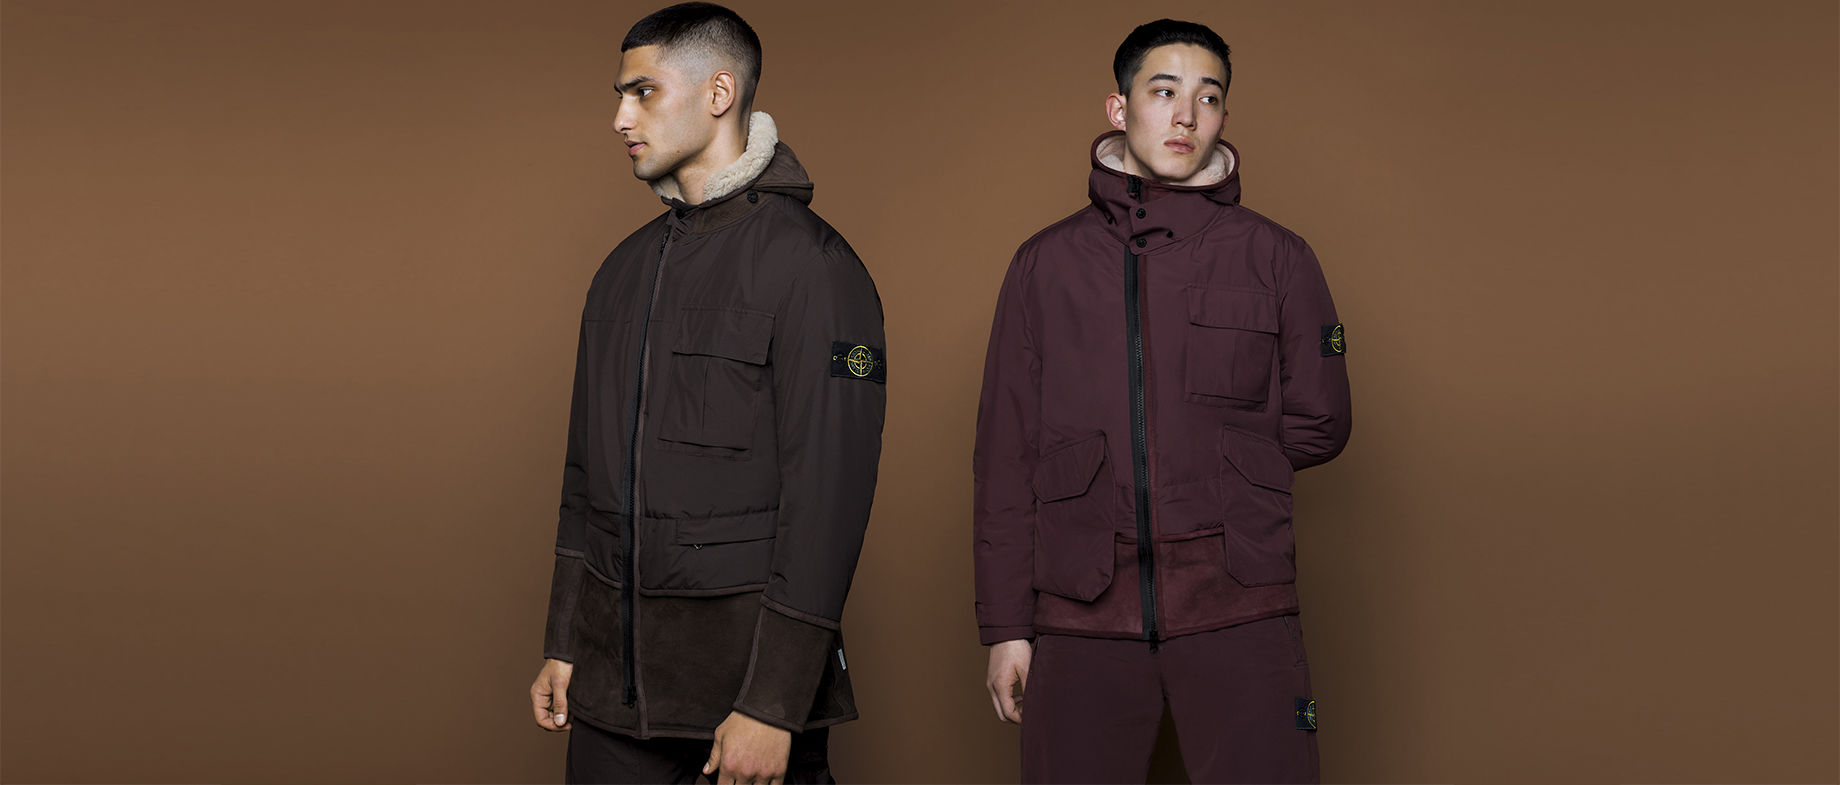 Two models wearing hooded parkas with patch pockets and black zippers, one in dark brown and one in burgundy